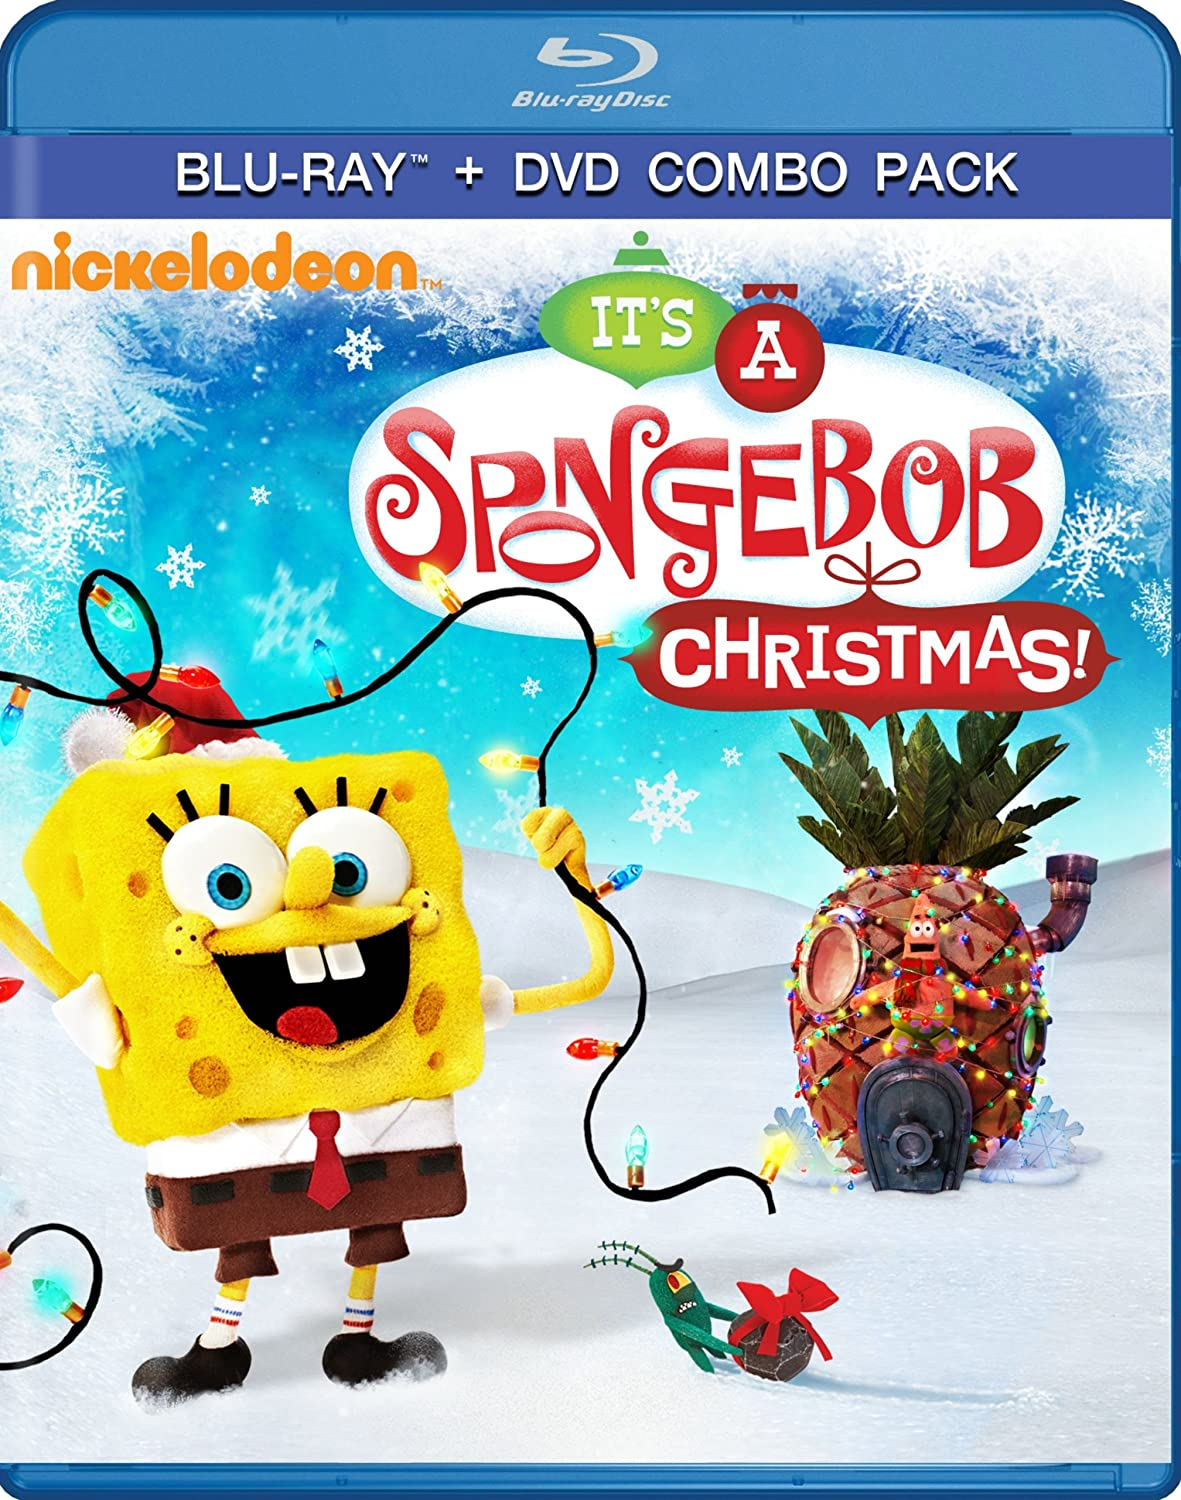 http://www.amazon.com/SpongeBob-SquarePants-Christmas-Two-Disc-Blu-ray/dp/B008VECEC4/